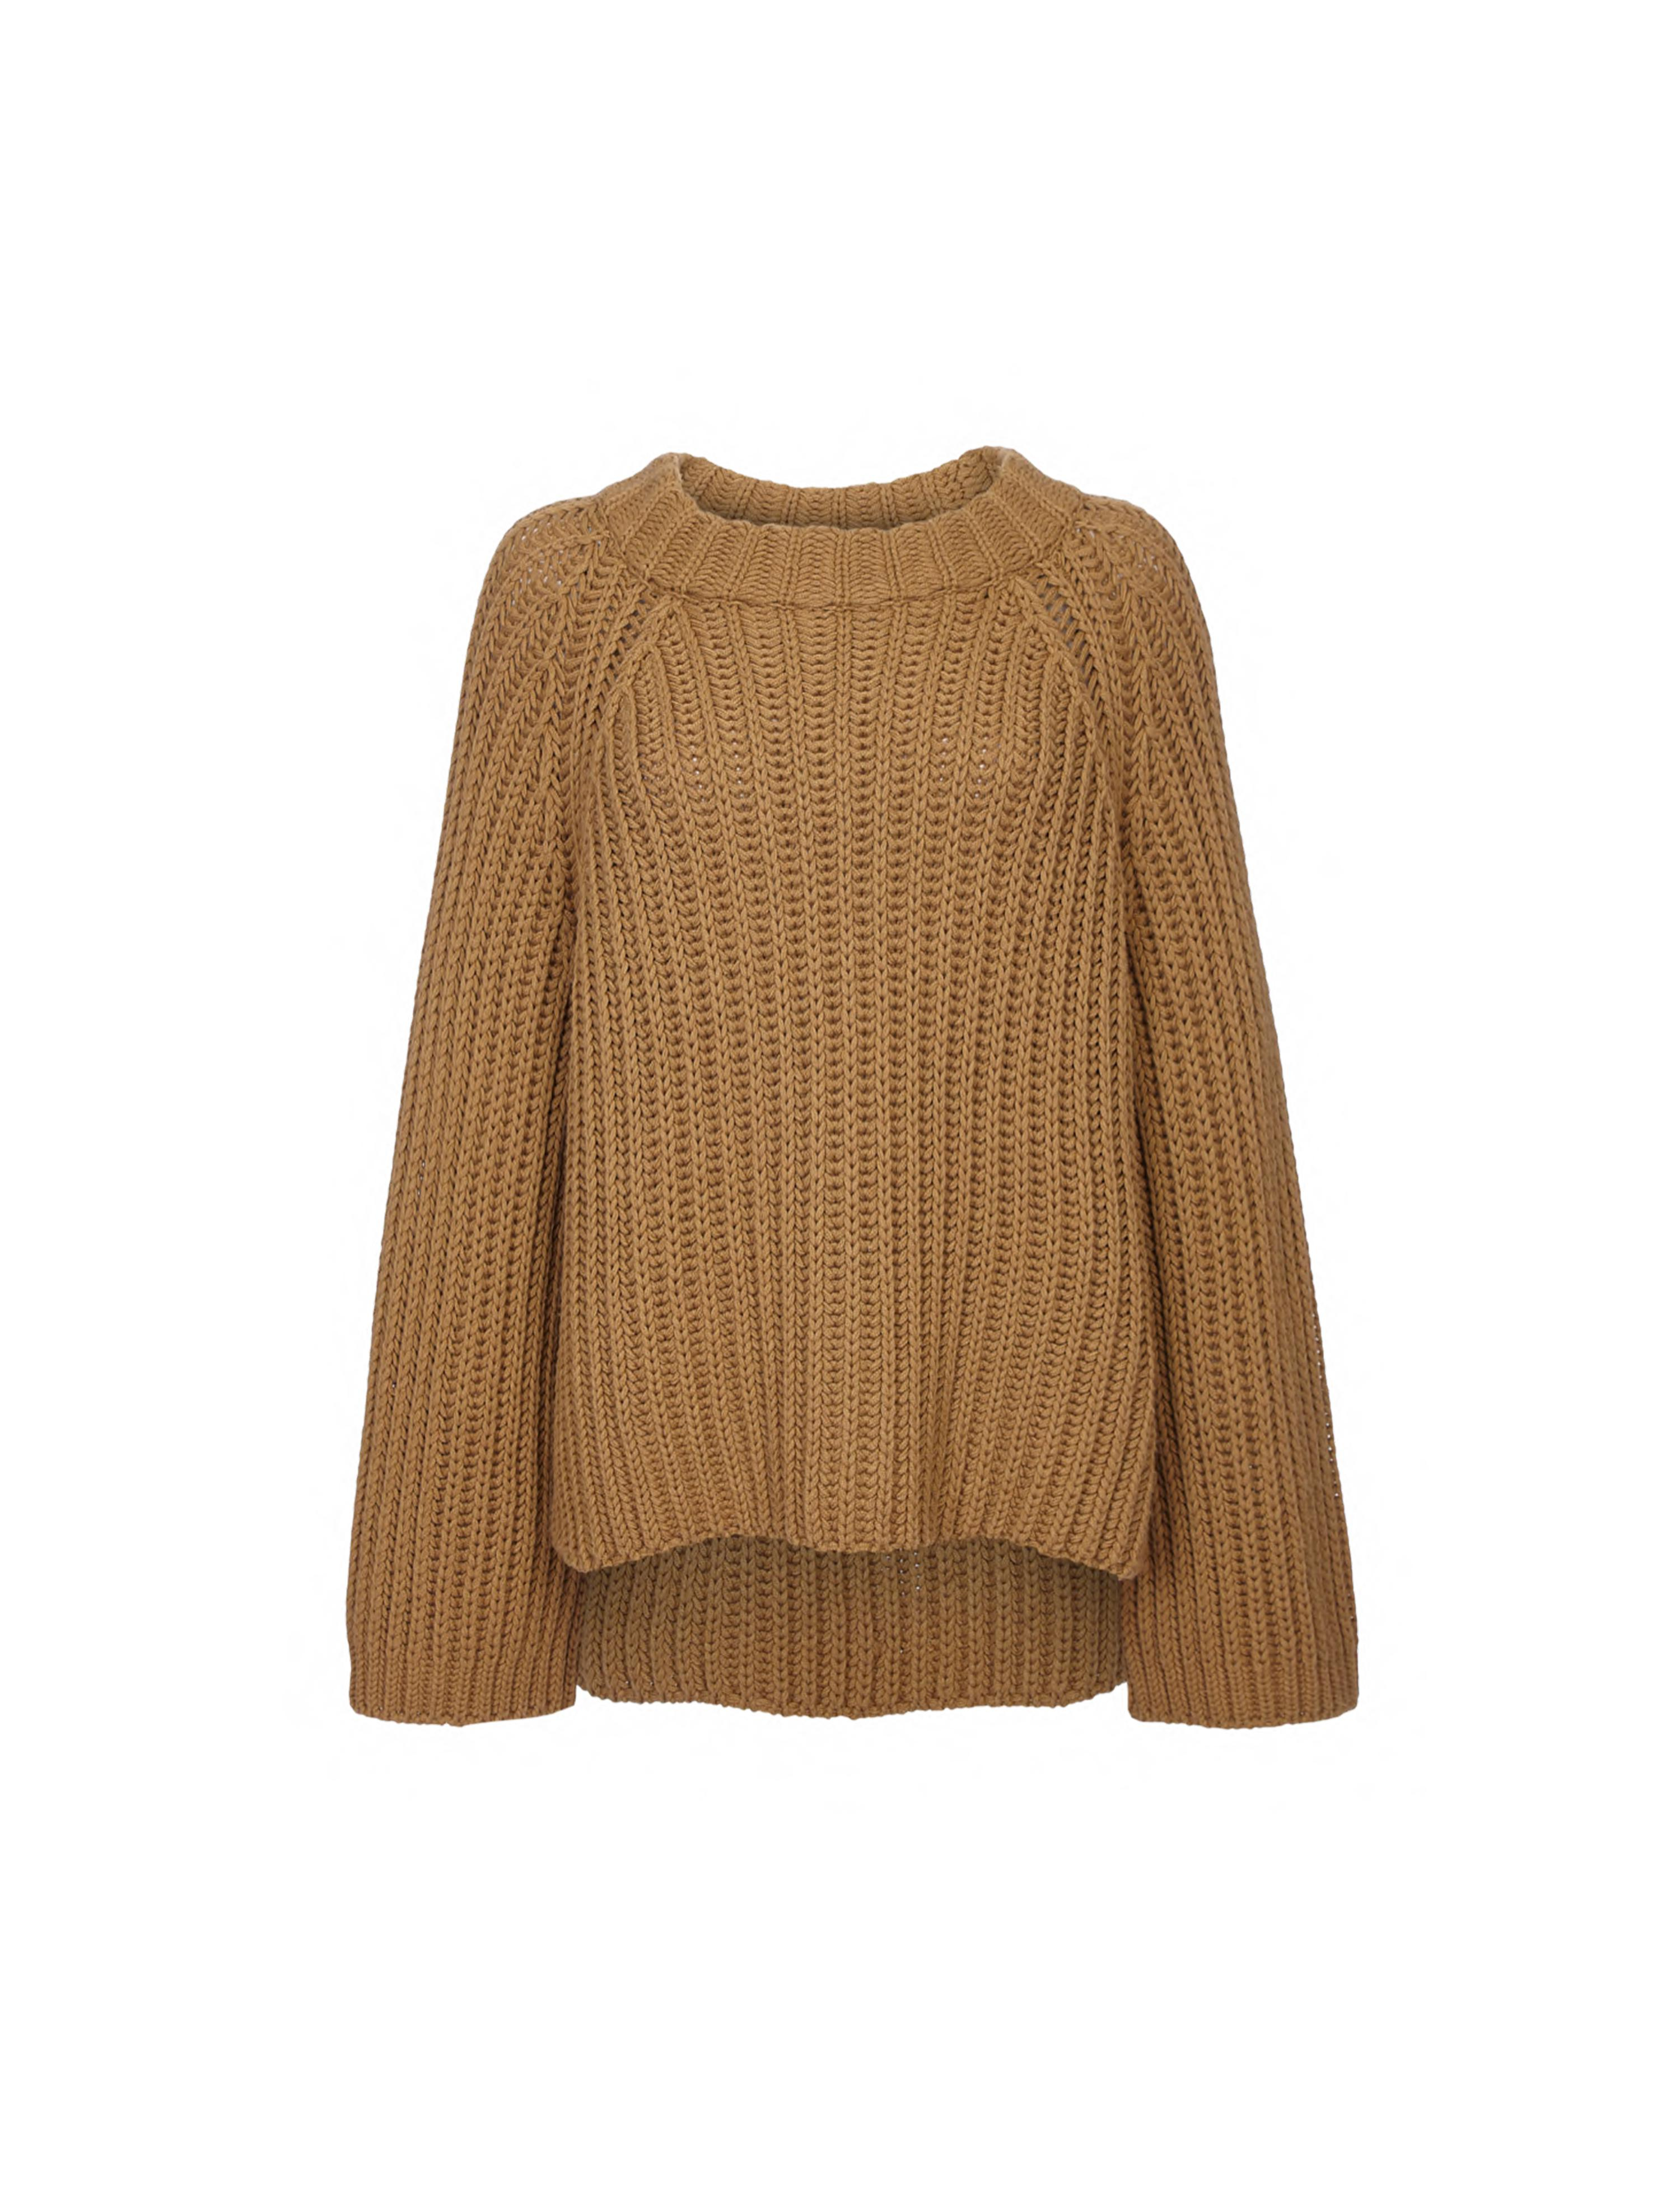 THE STEPH CASHMERE BLEND RIB OPEN NECK SWEATER